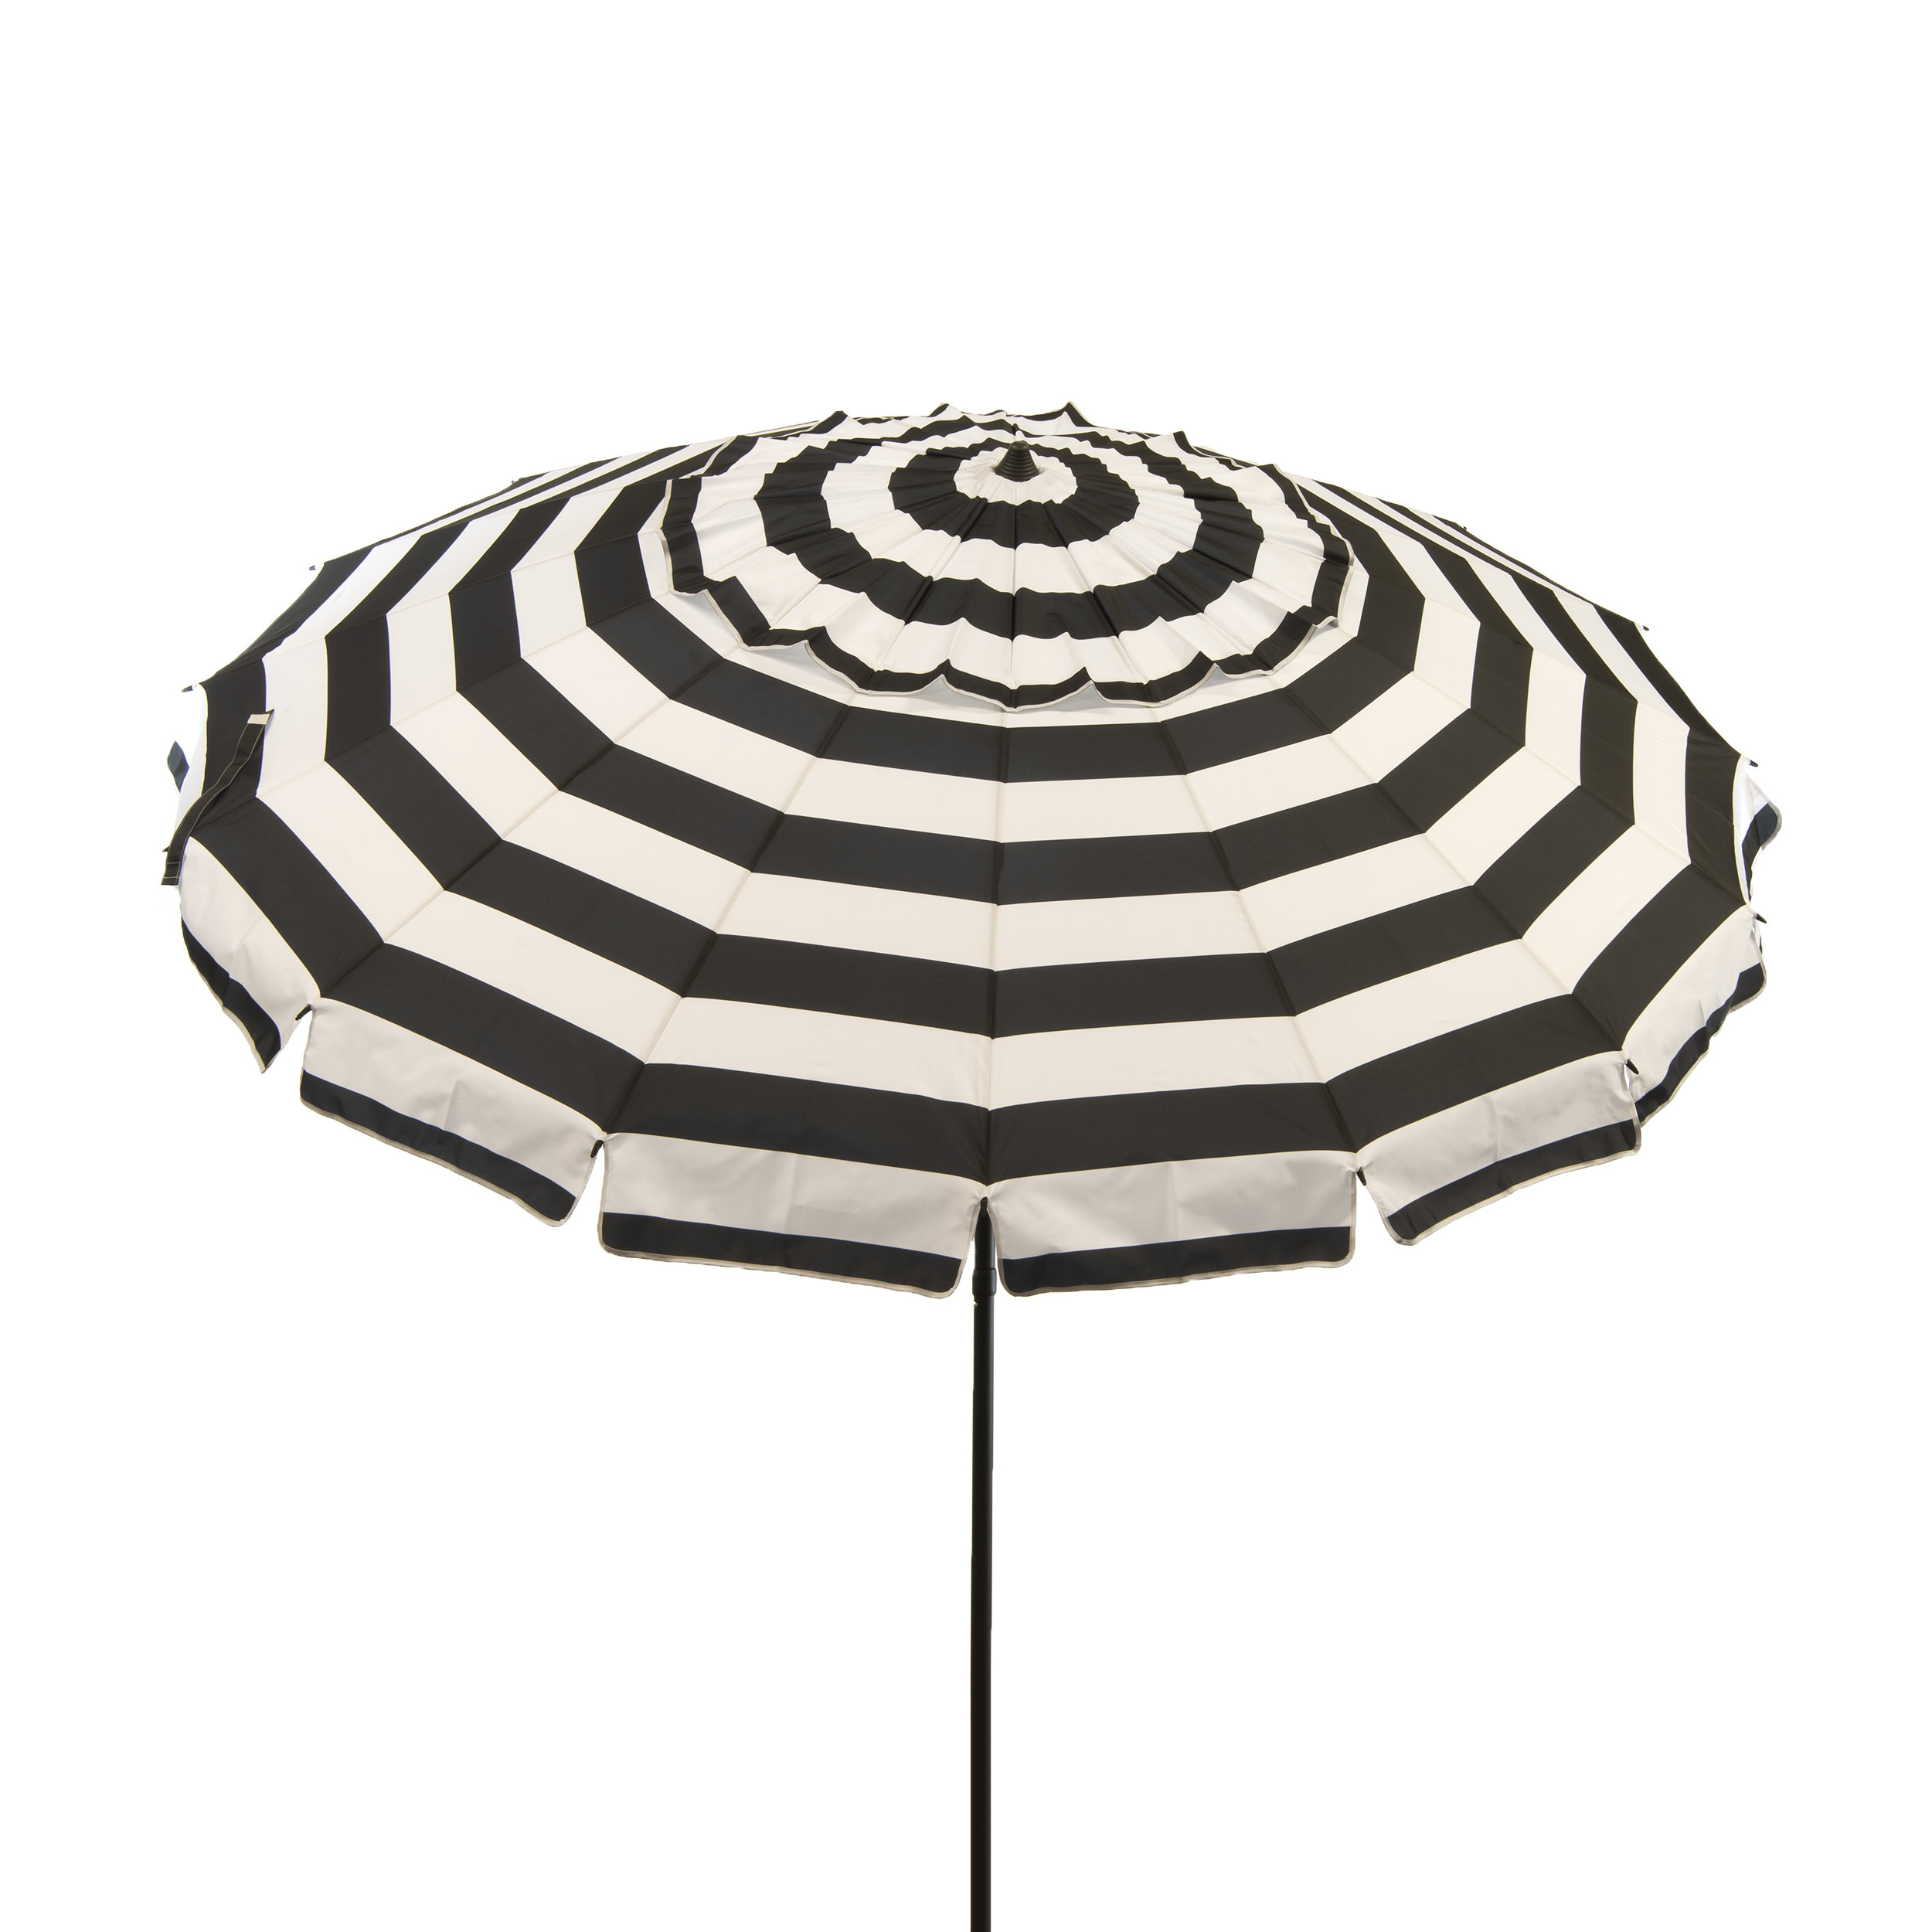 2019 8' Beach Umbrella With Regard To Bella Beach Umbrellas (Gallery 14 of 20)